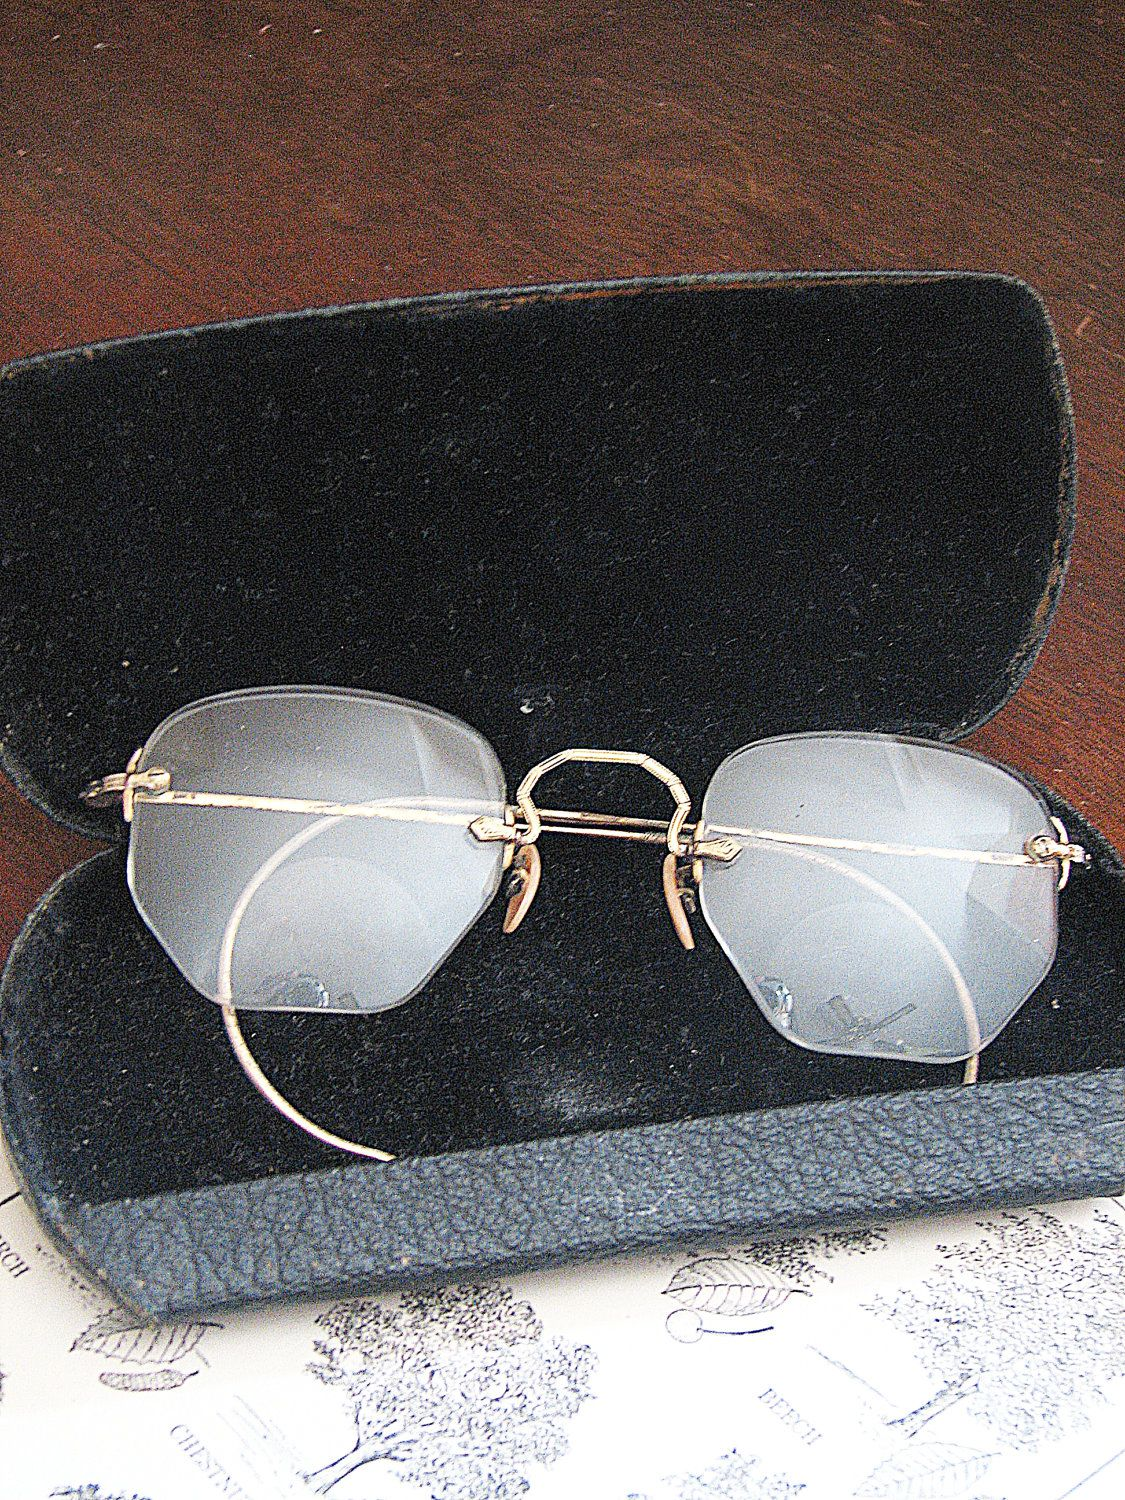 Items similar to SALE Eyewear Glasses Frames Very Old Vintage on Etsy